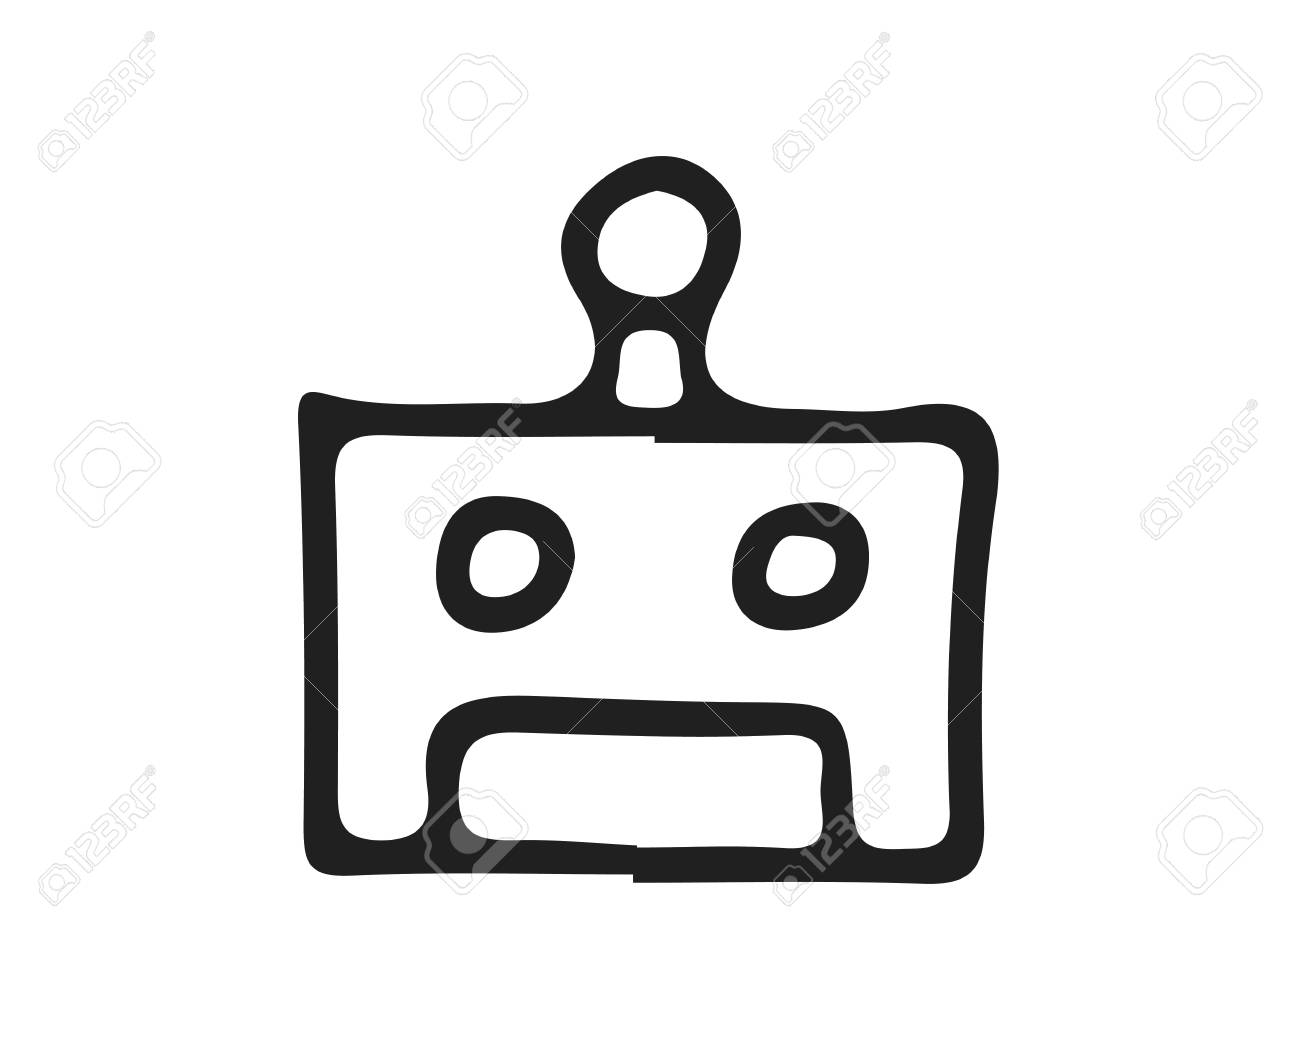 robot icon design illustration,hand drawn style design, designed